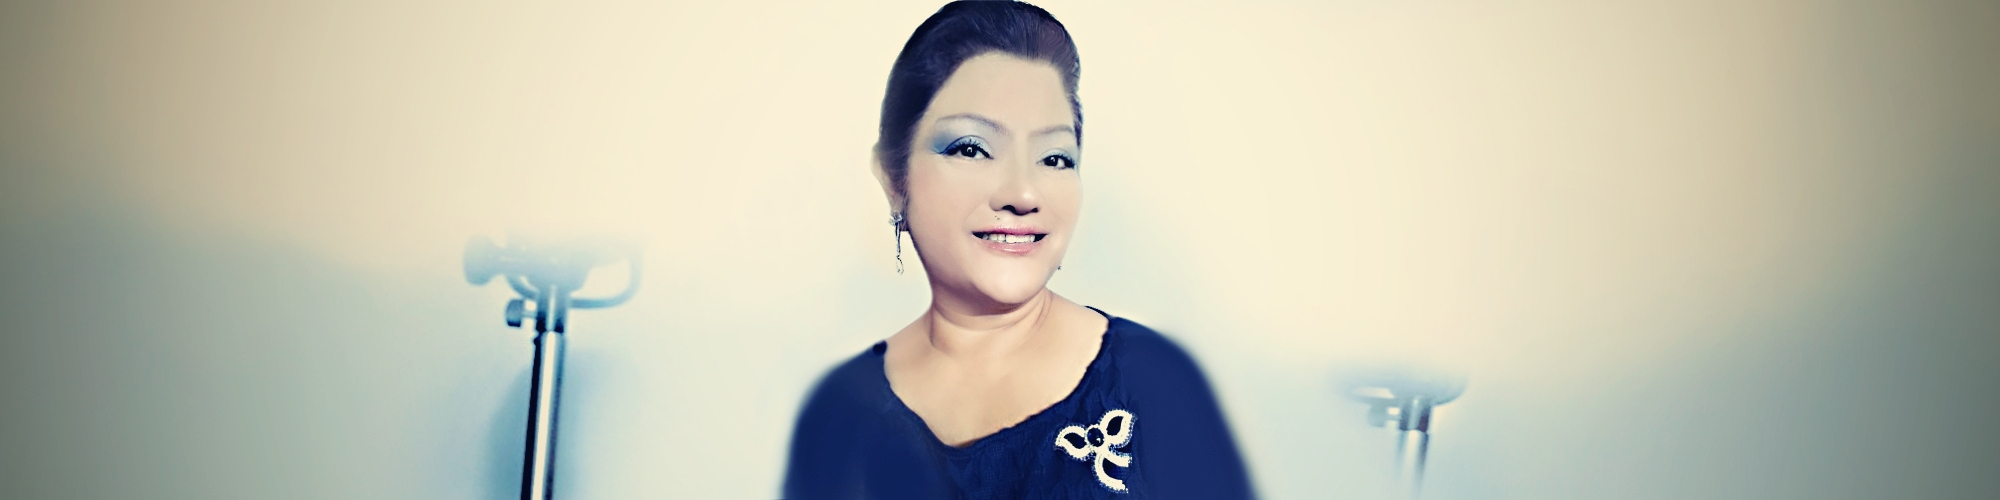 By Pradichaya | Thai food | photography | voice teaching | opera artist